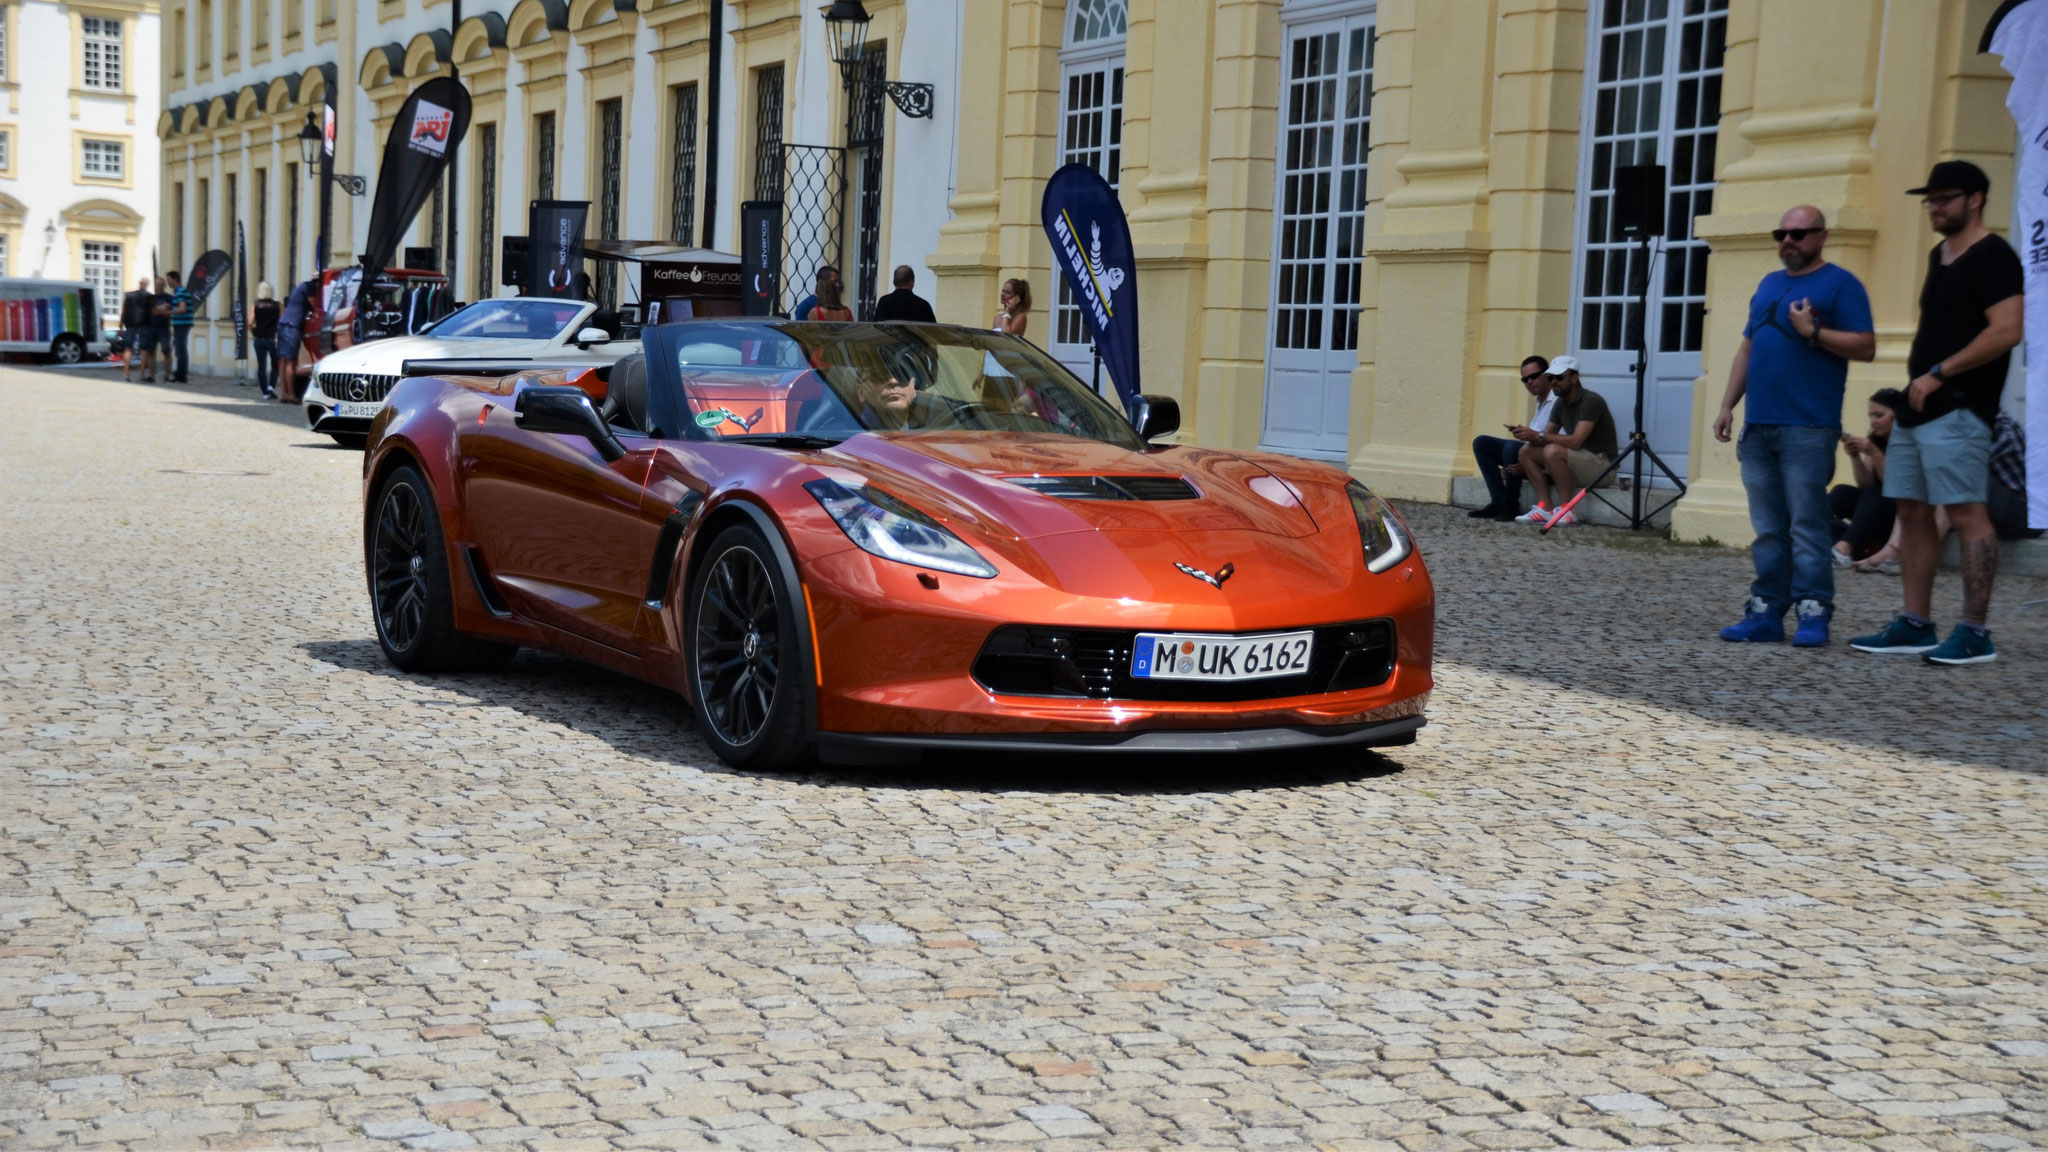 Chevrolet Corvette C7 Z06 Convertible - M-UK-6162